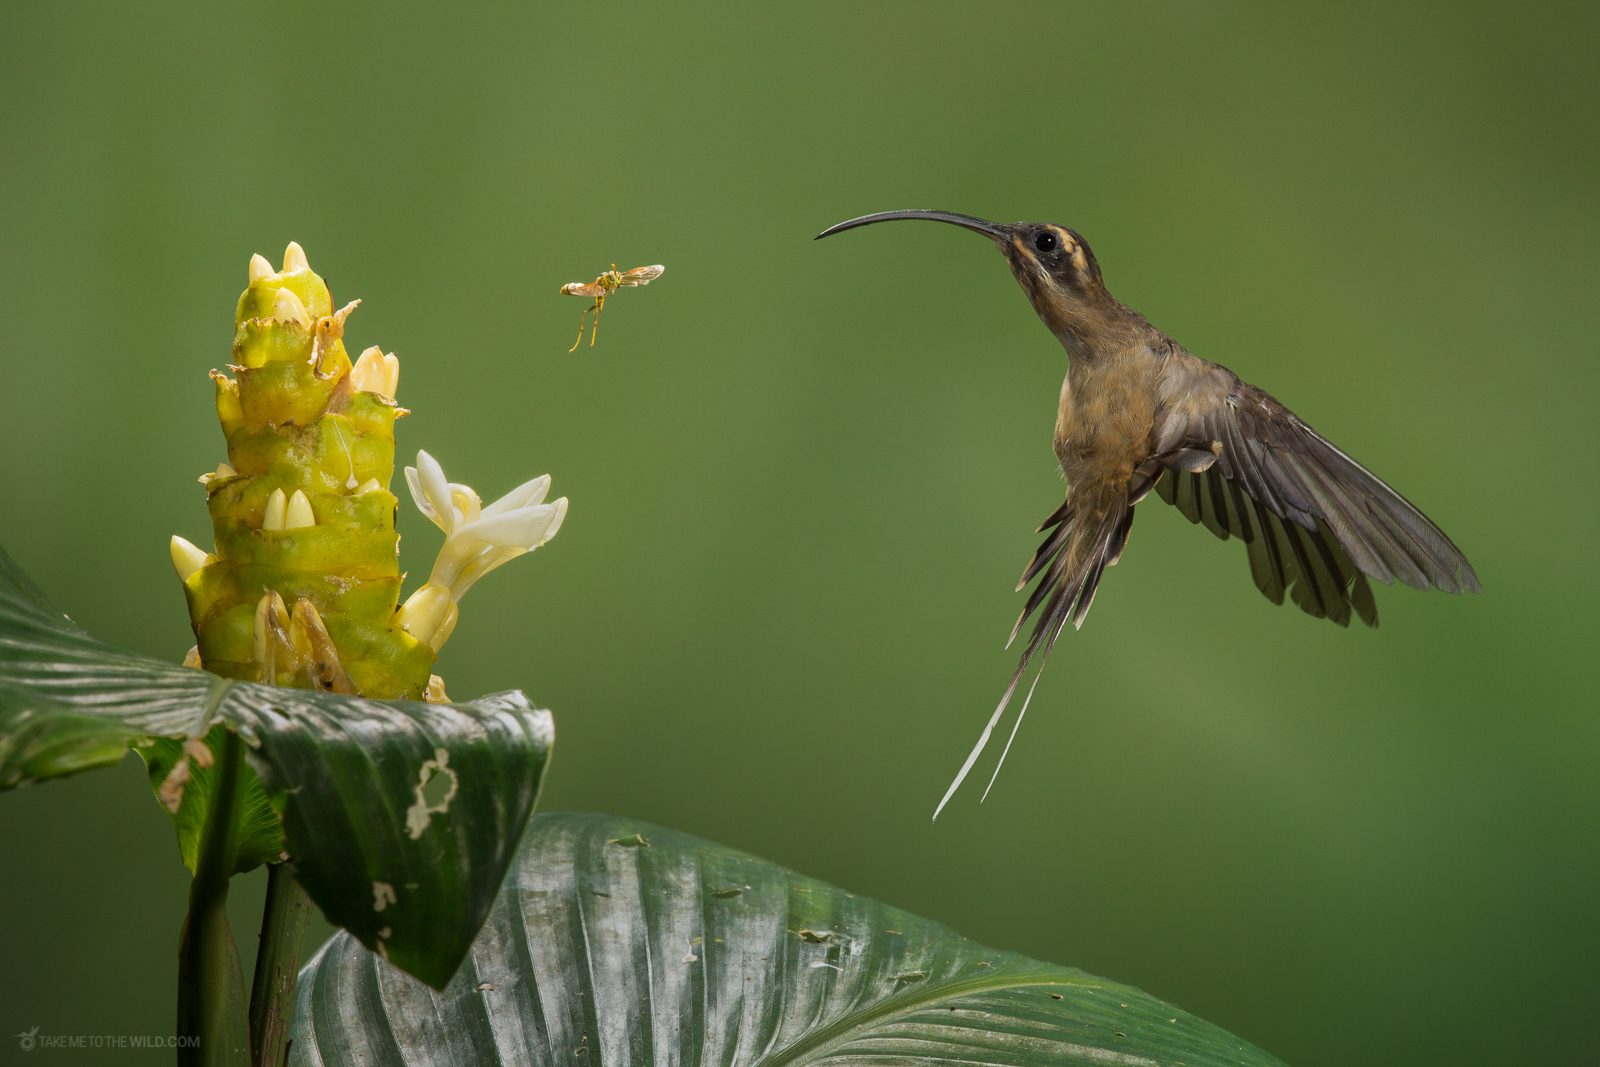 Long-billed Hermit (Phaethornis longirostris) fighting a bee at the lowlands of Costa Rica